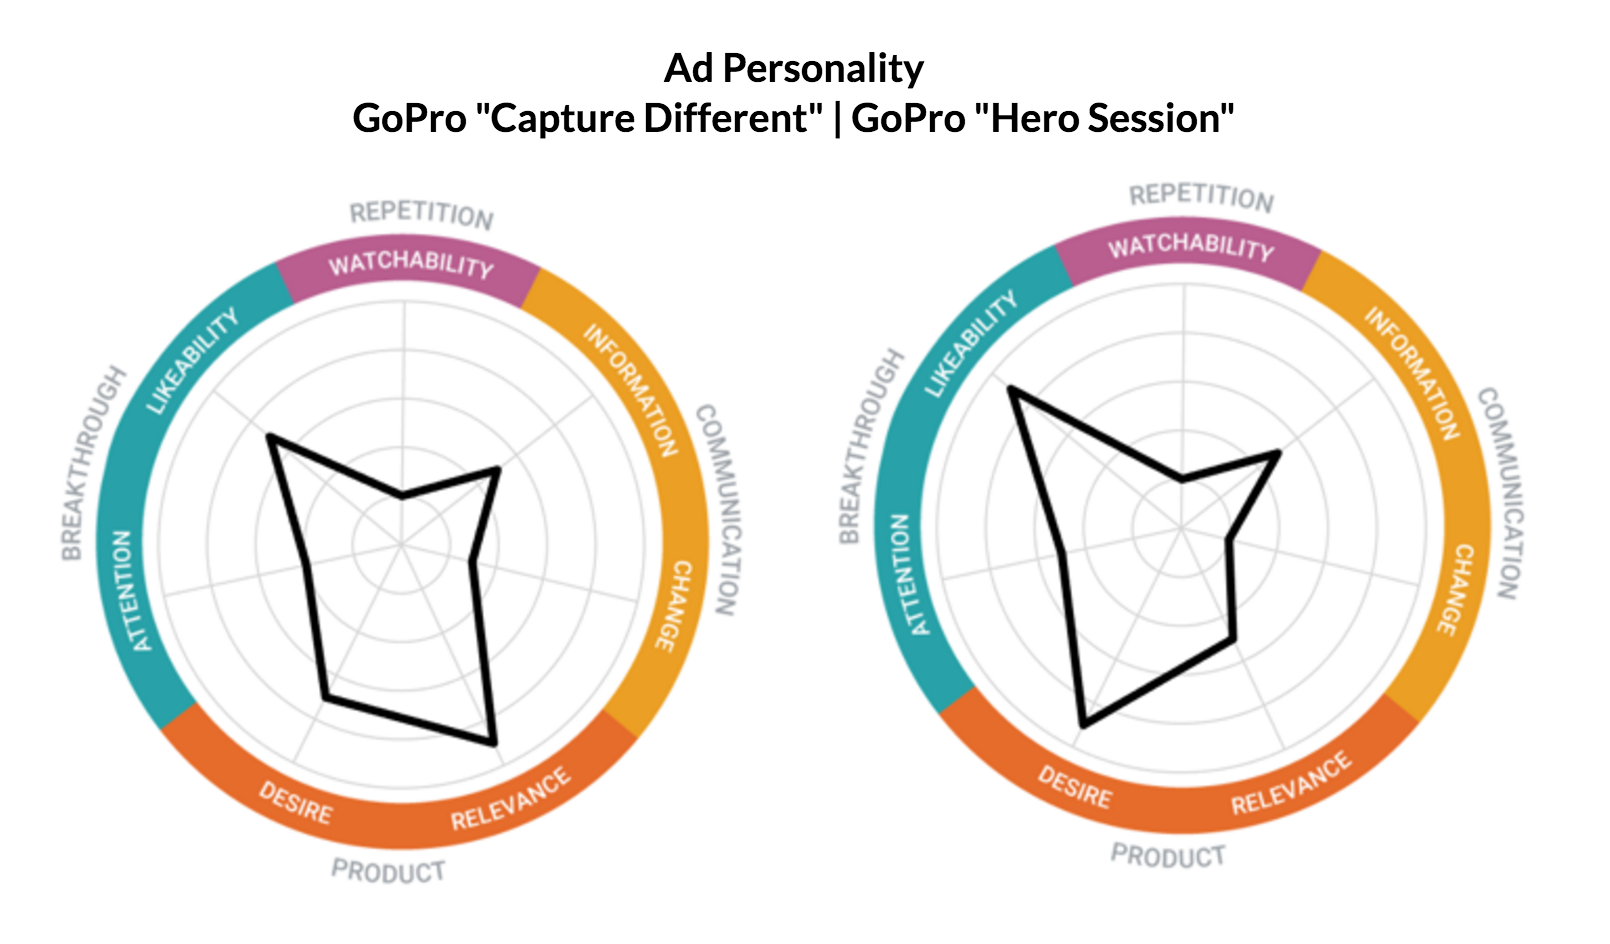 This image displays two GoPro Ad Personality graphics.